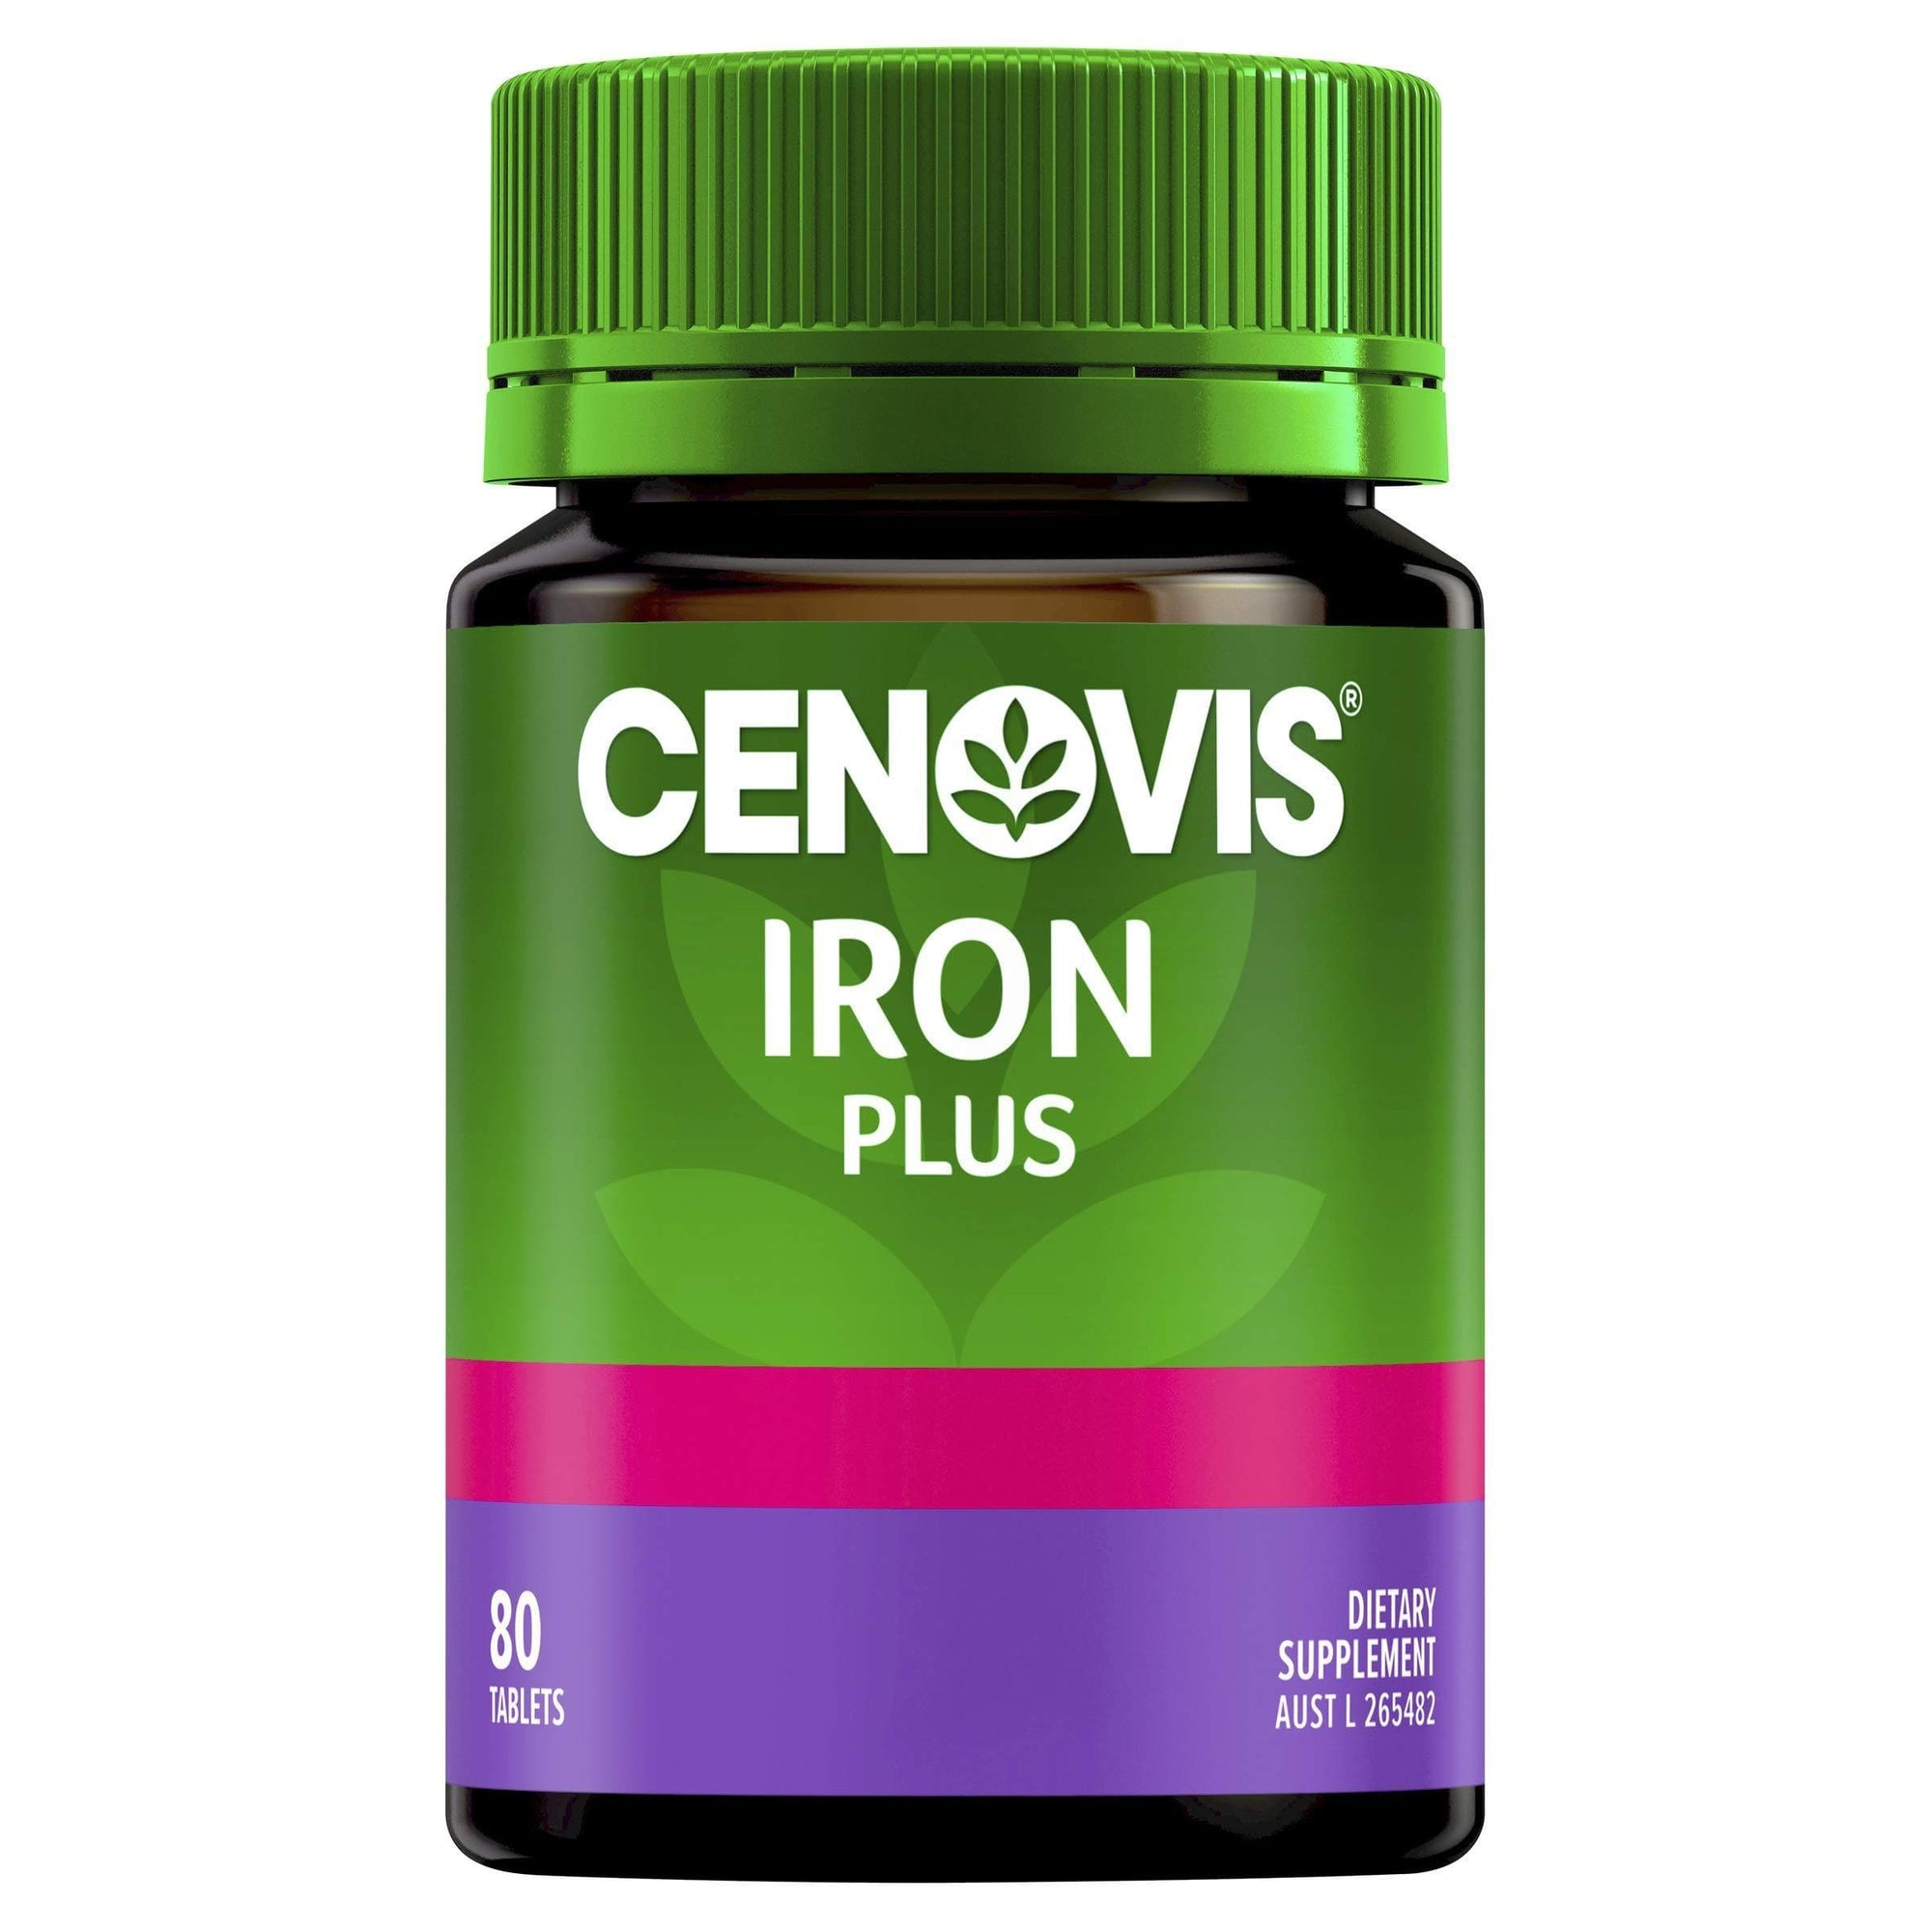 Iron Plus - Iron Tablets - Assists iron absorption - Supports energy levels - Relieves fatigue